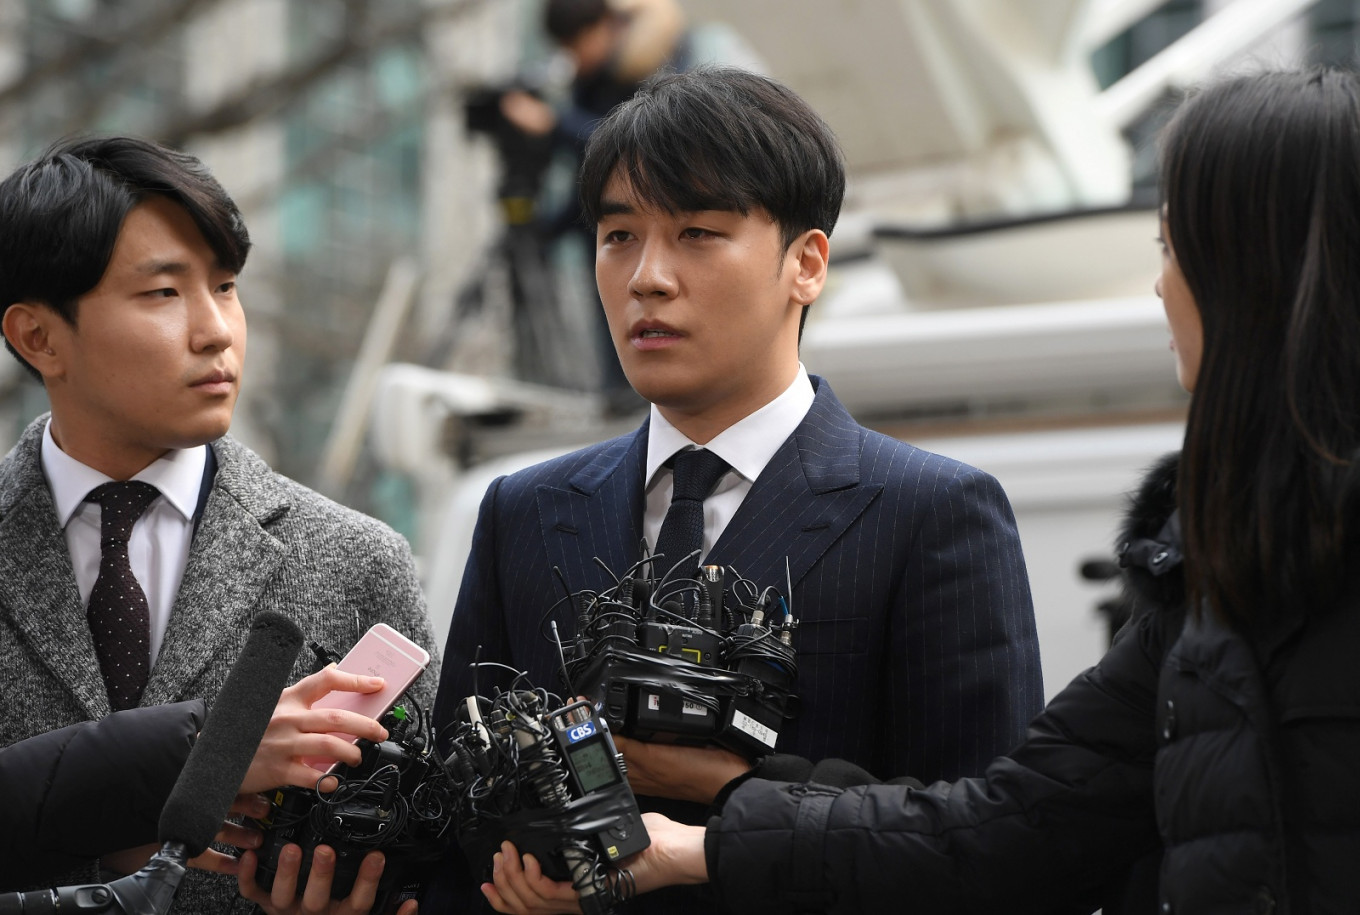 Seungri bought sex services himself: Police